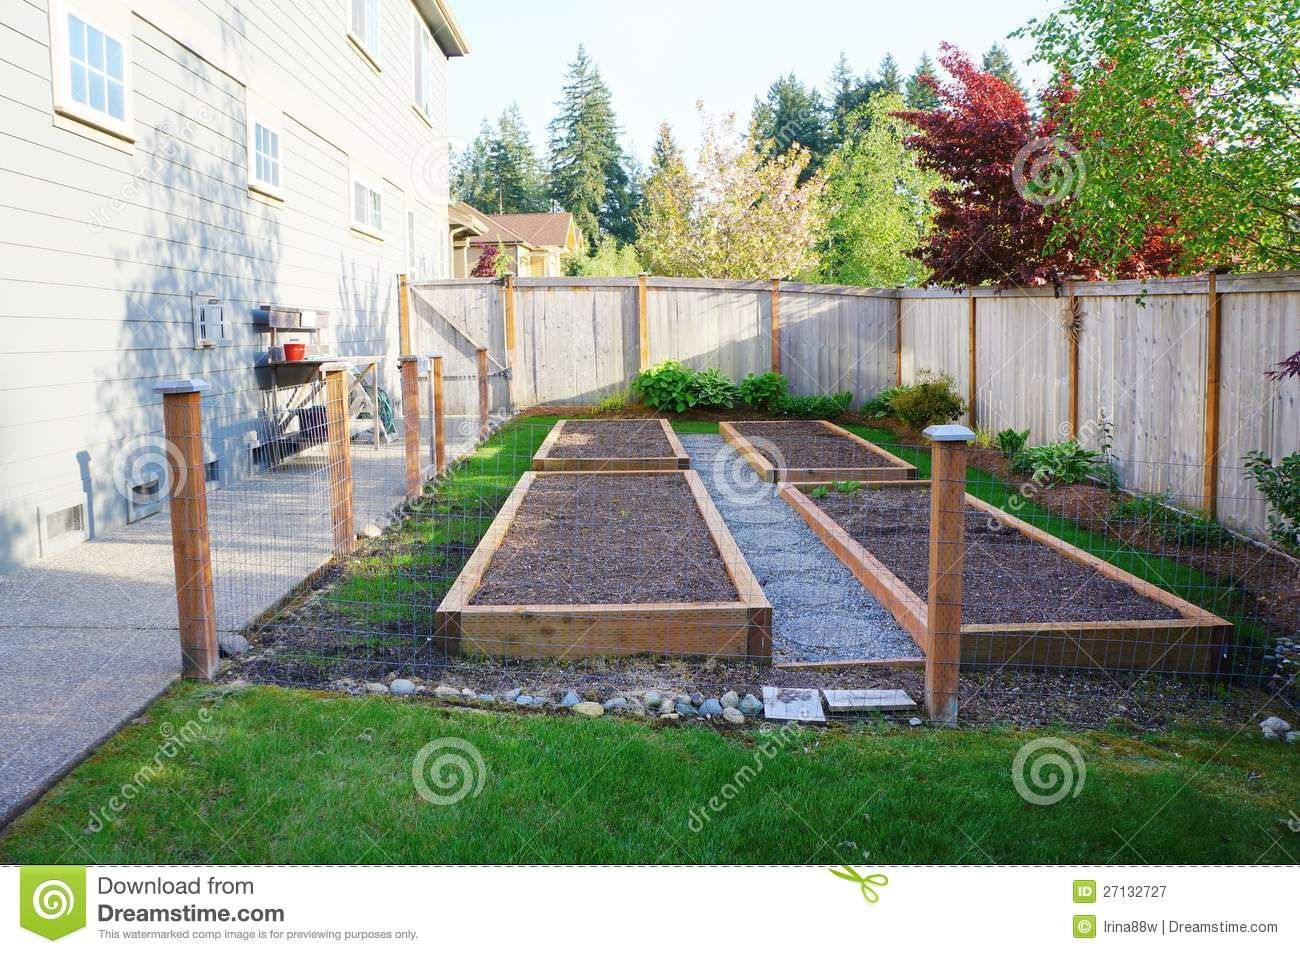 Vegetable Garden Ideas For Small Yards Part - 34: Vegetable Gardens For Small Yards | Small Vegetable Garden With Risen Beds  In The Fenced Backyard